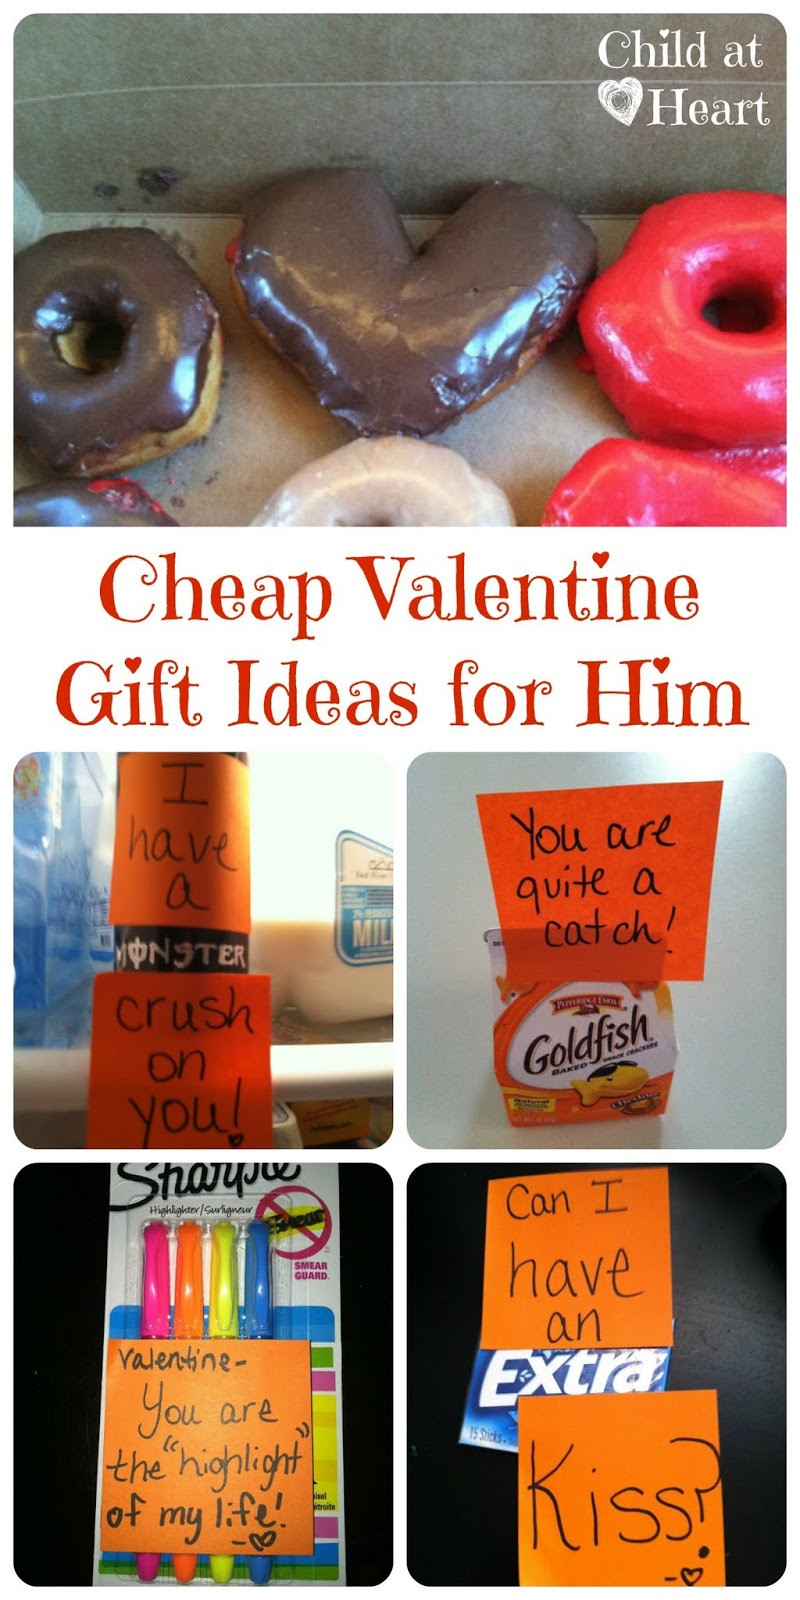 Valentines Gift Ideas For Husband  Cheap Valentine Gift Ideas for Him Child at Heart Blog